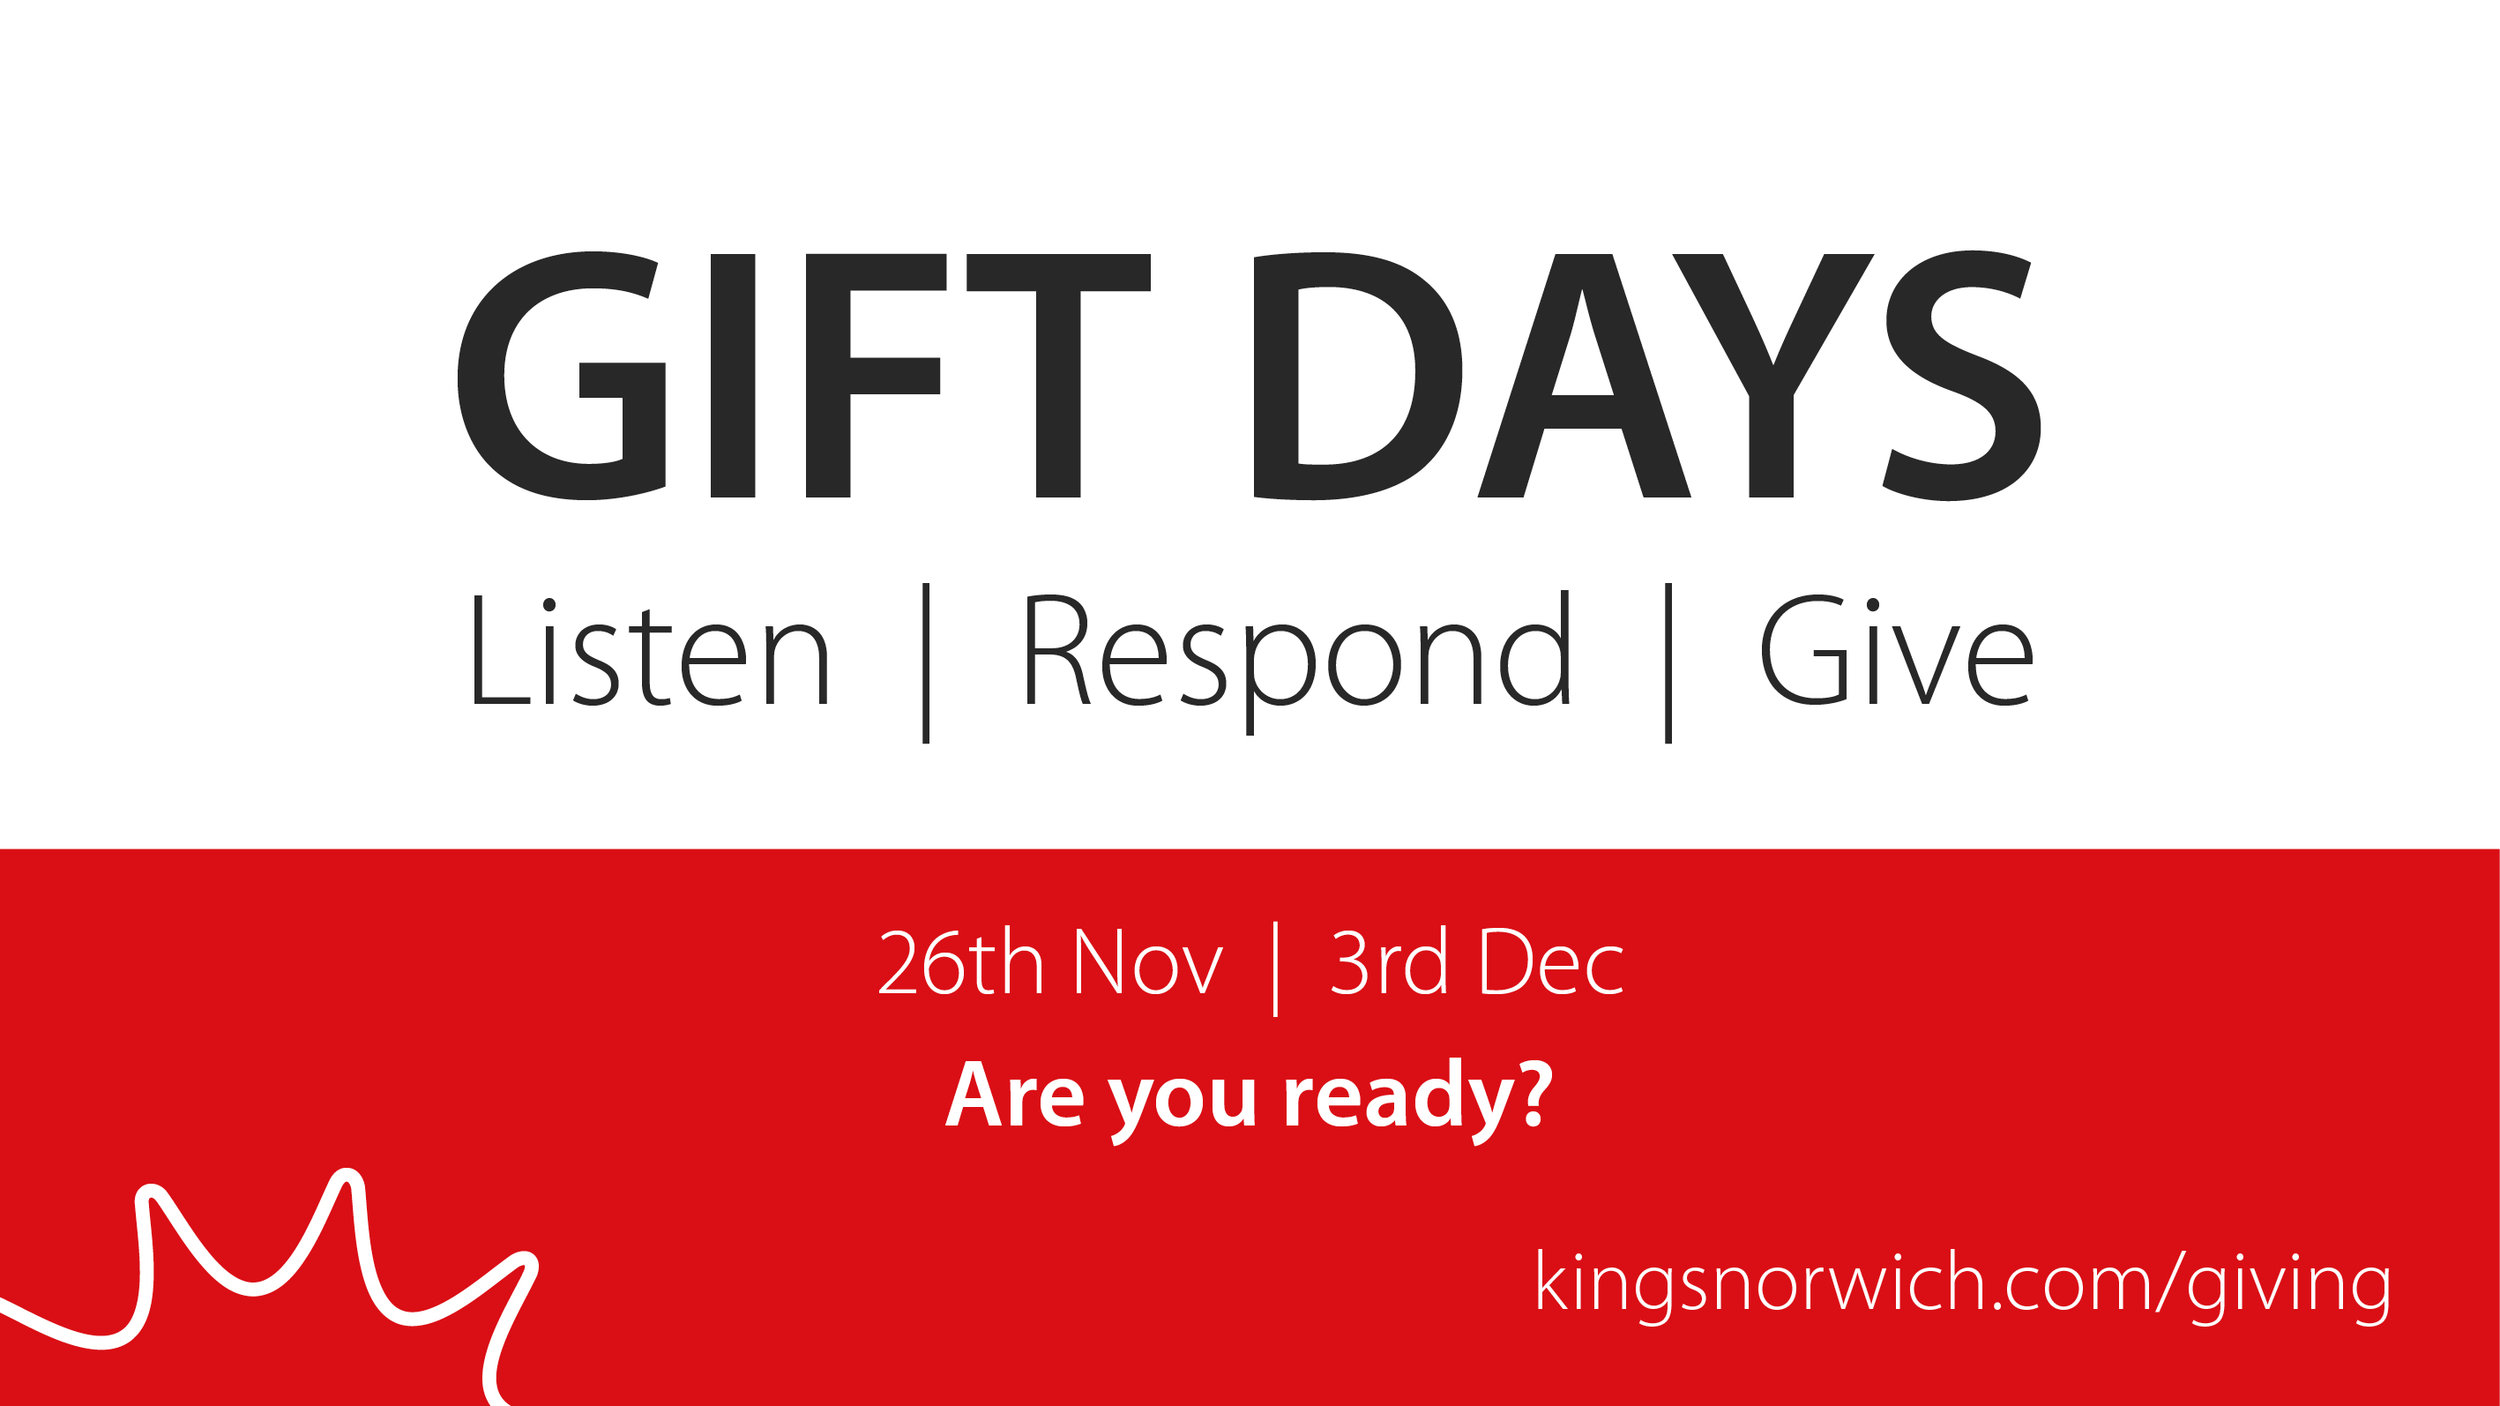 Kings_KC_GiftDay_Nov2017_2.jpg